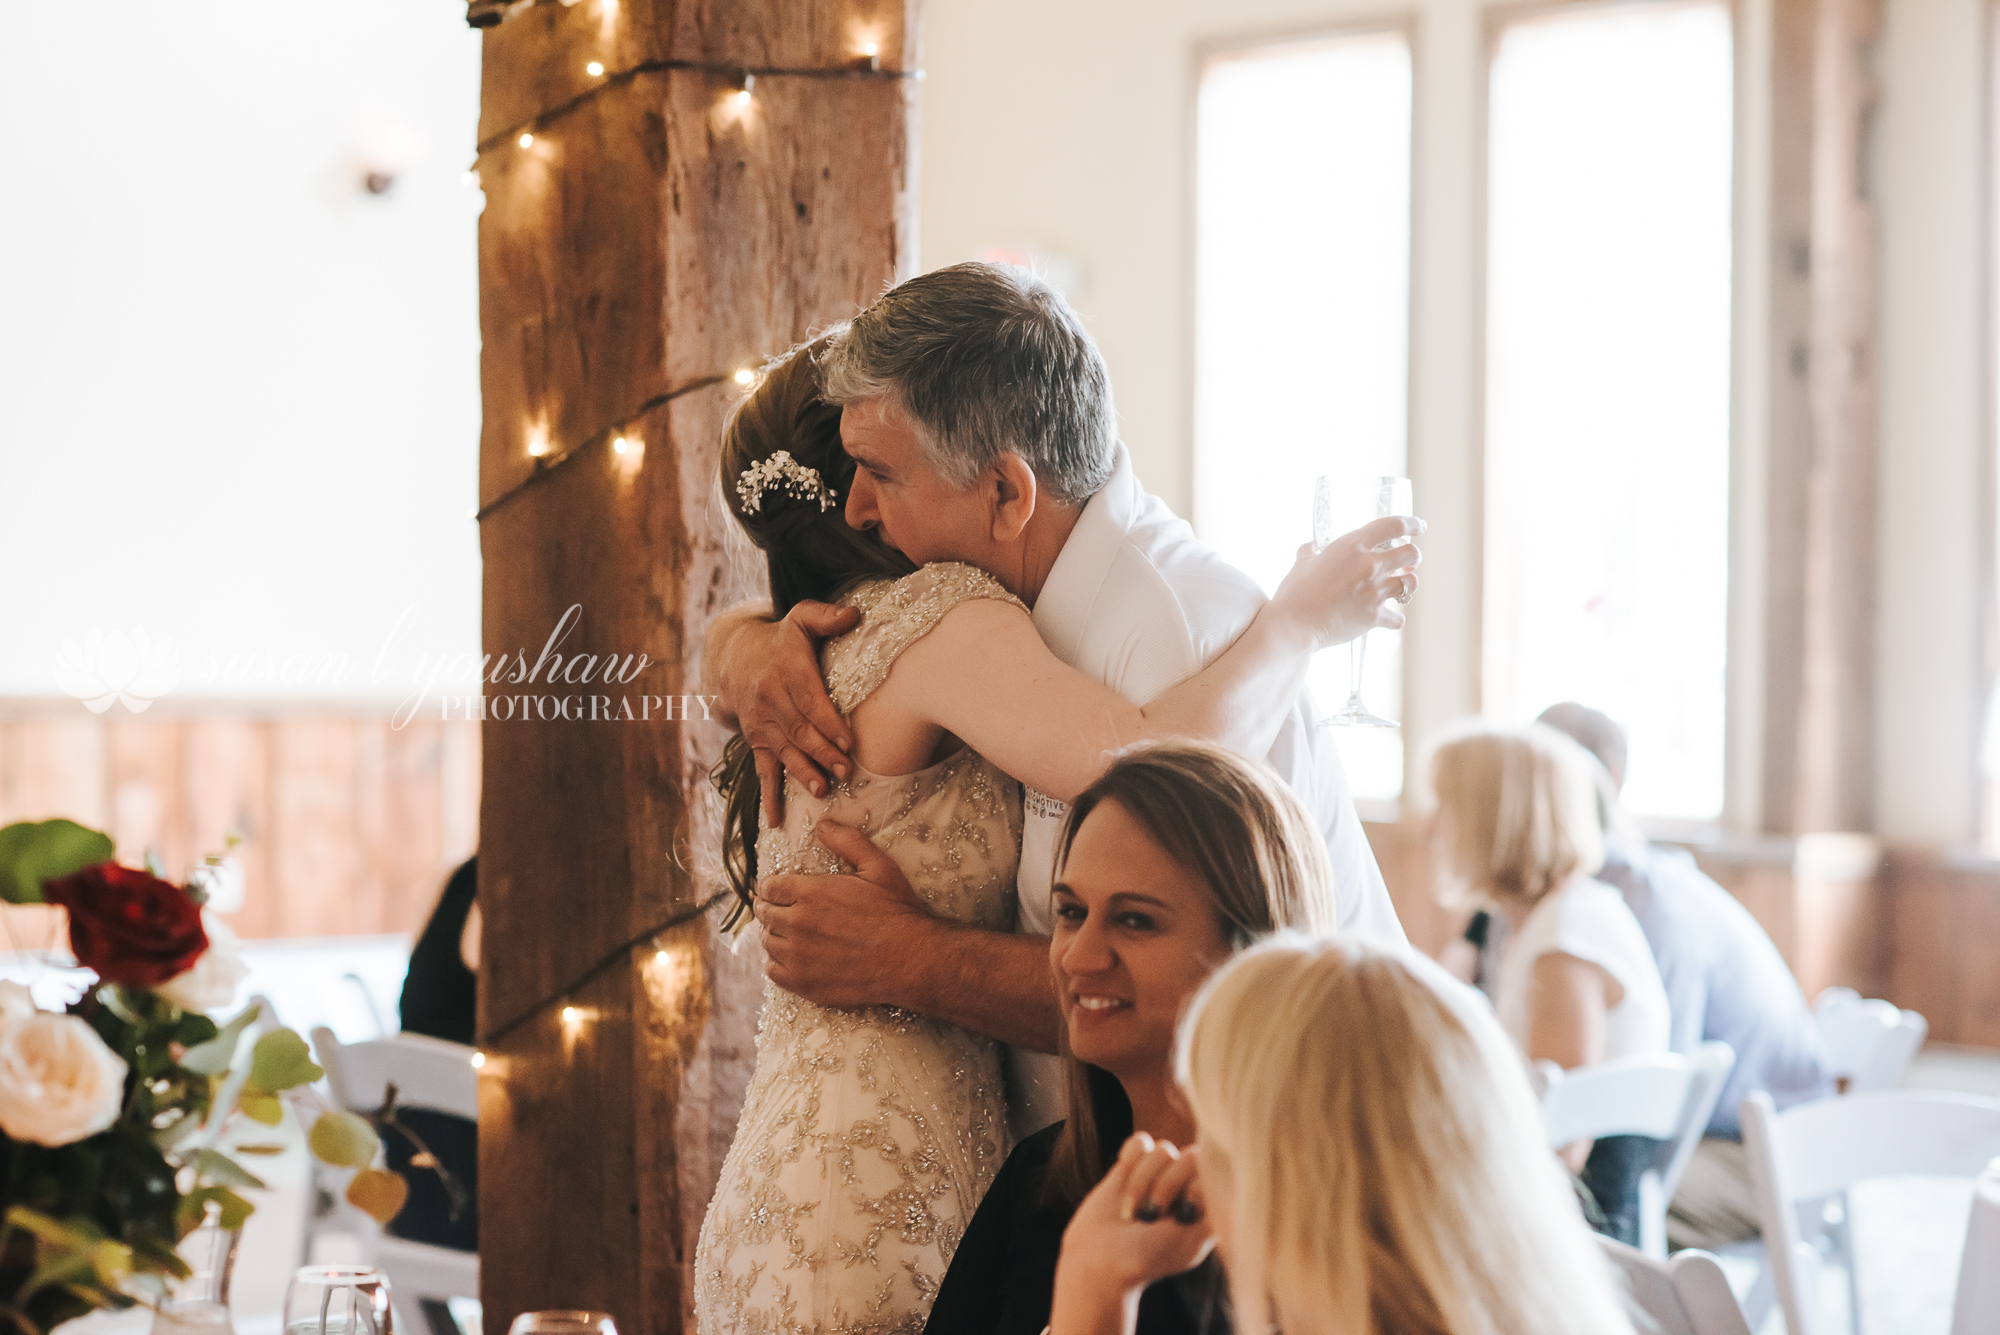 Chynna and John Wedding 05-18-2019 SLY Photography-123.jpg